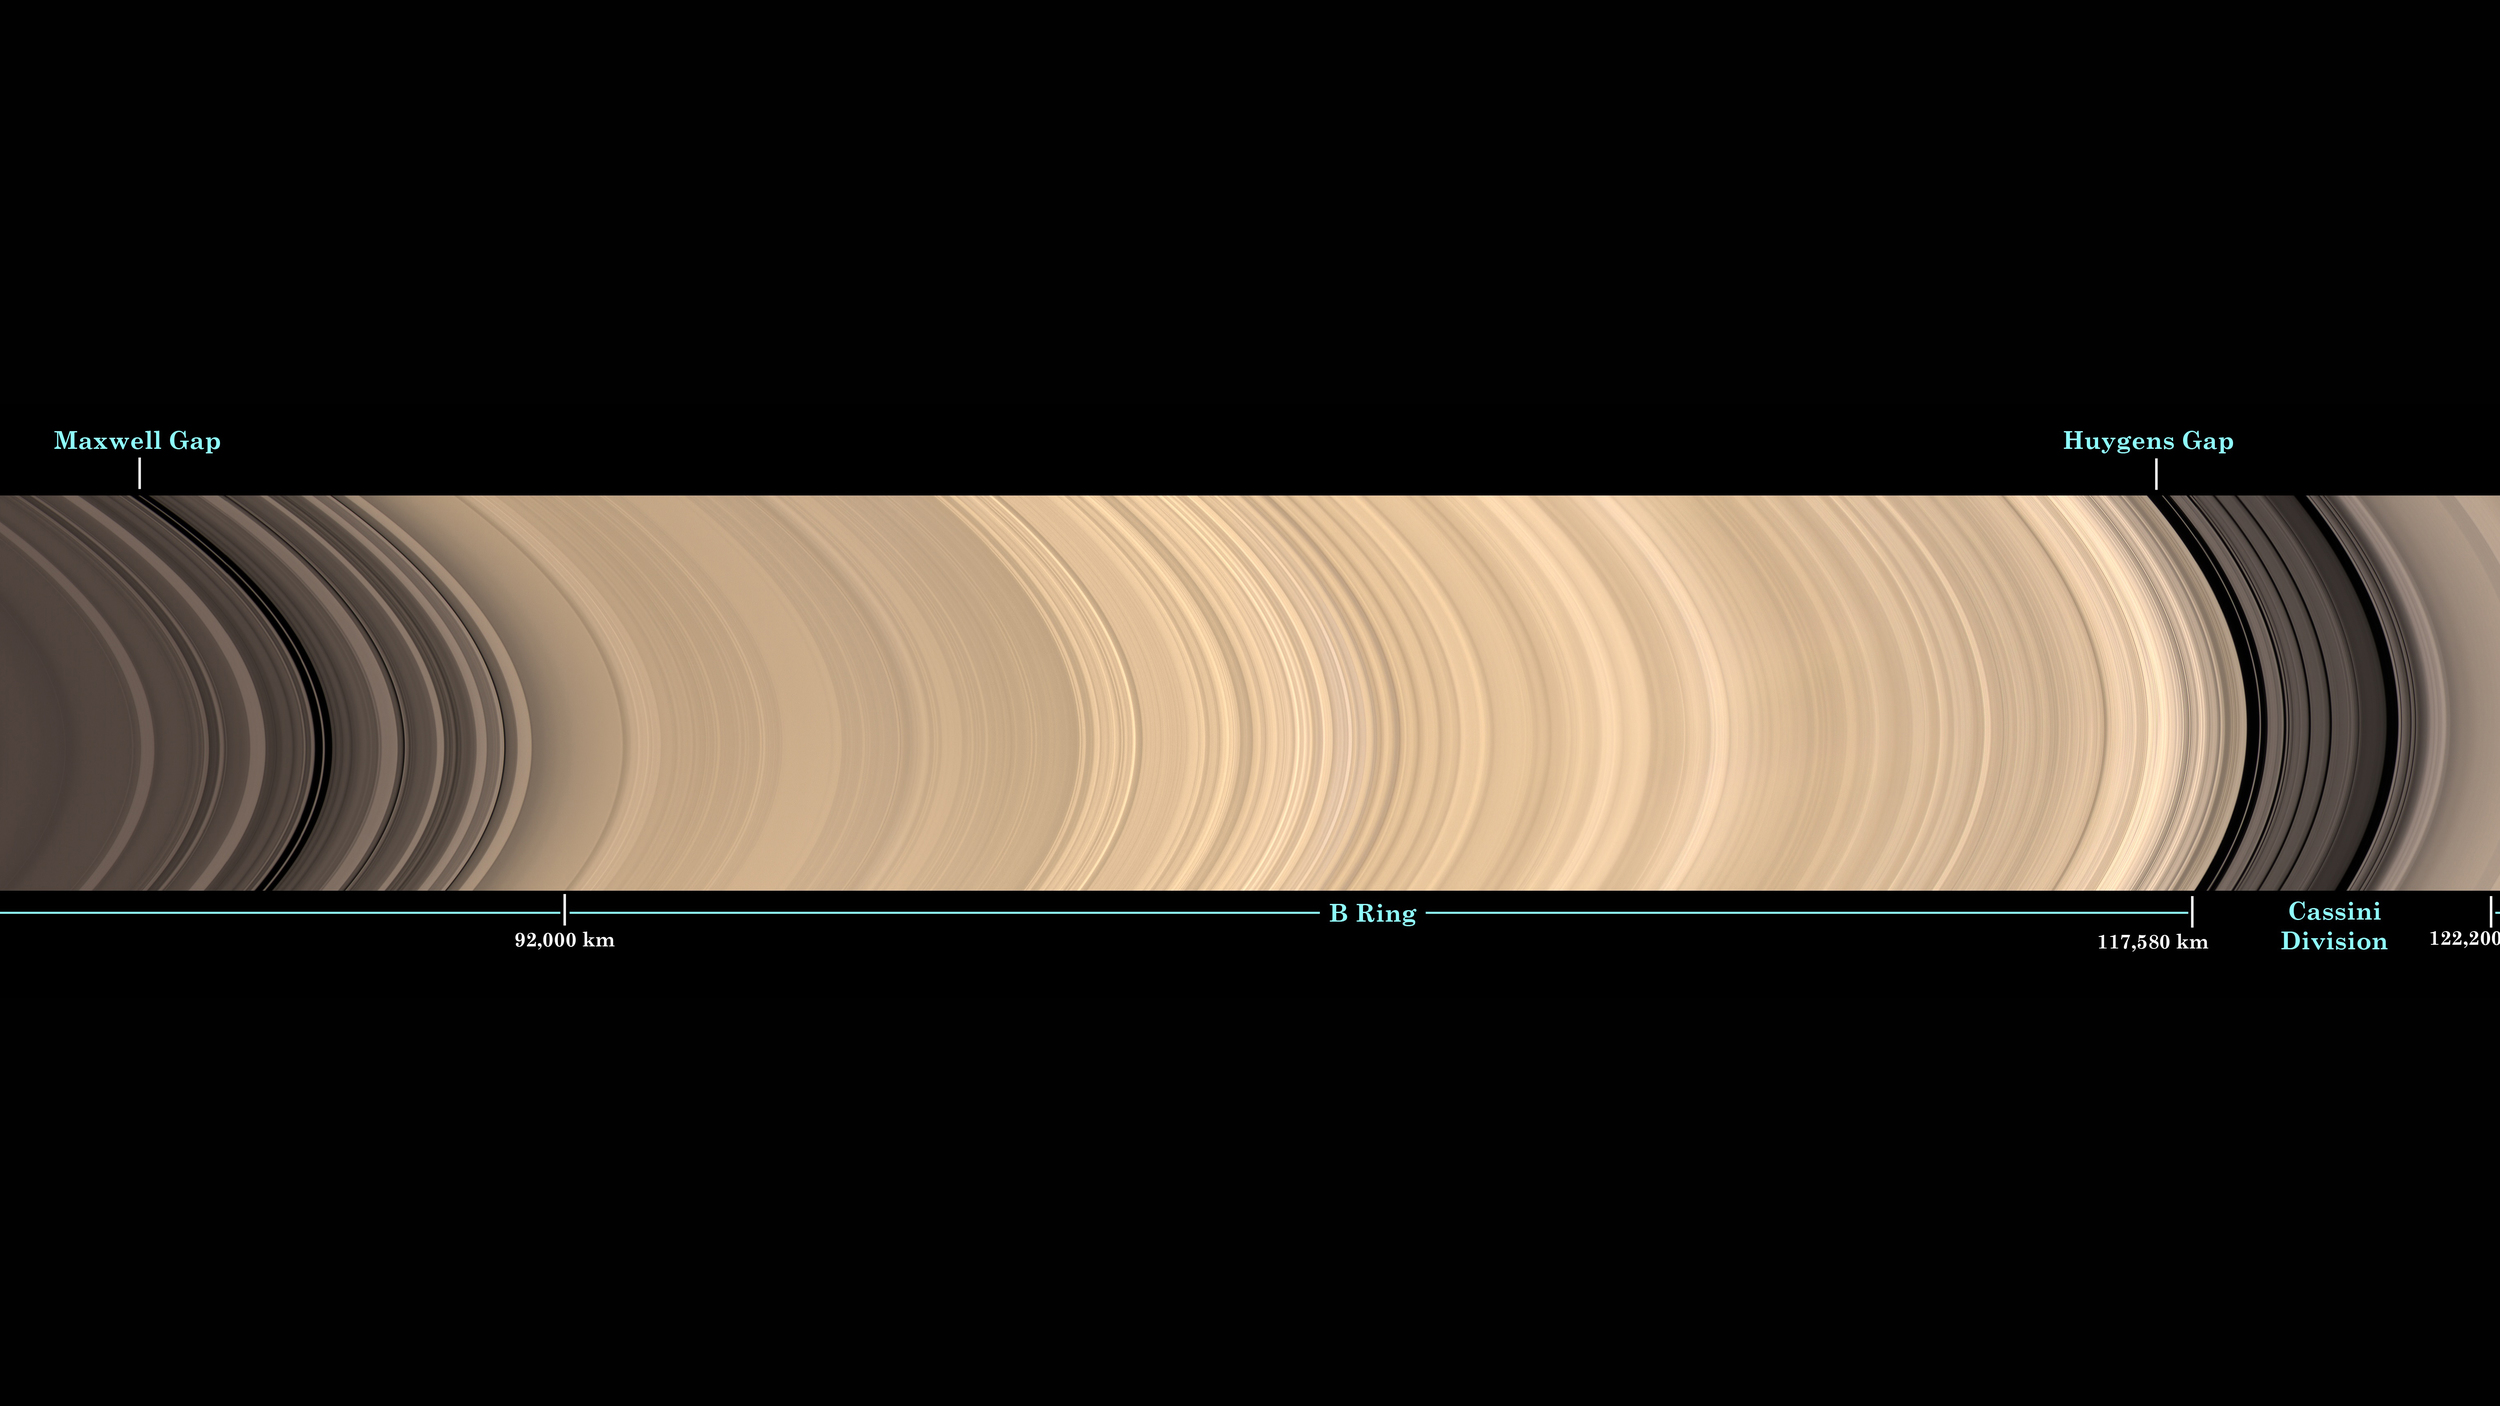 This image is cropped from a panoramic view of Saturn's main ring system, and includes the names of major ring features. – Image Credits: NASA/JPL-Caltech/Space Science Institute